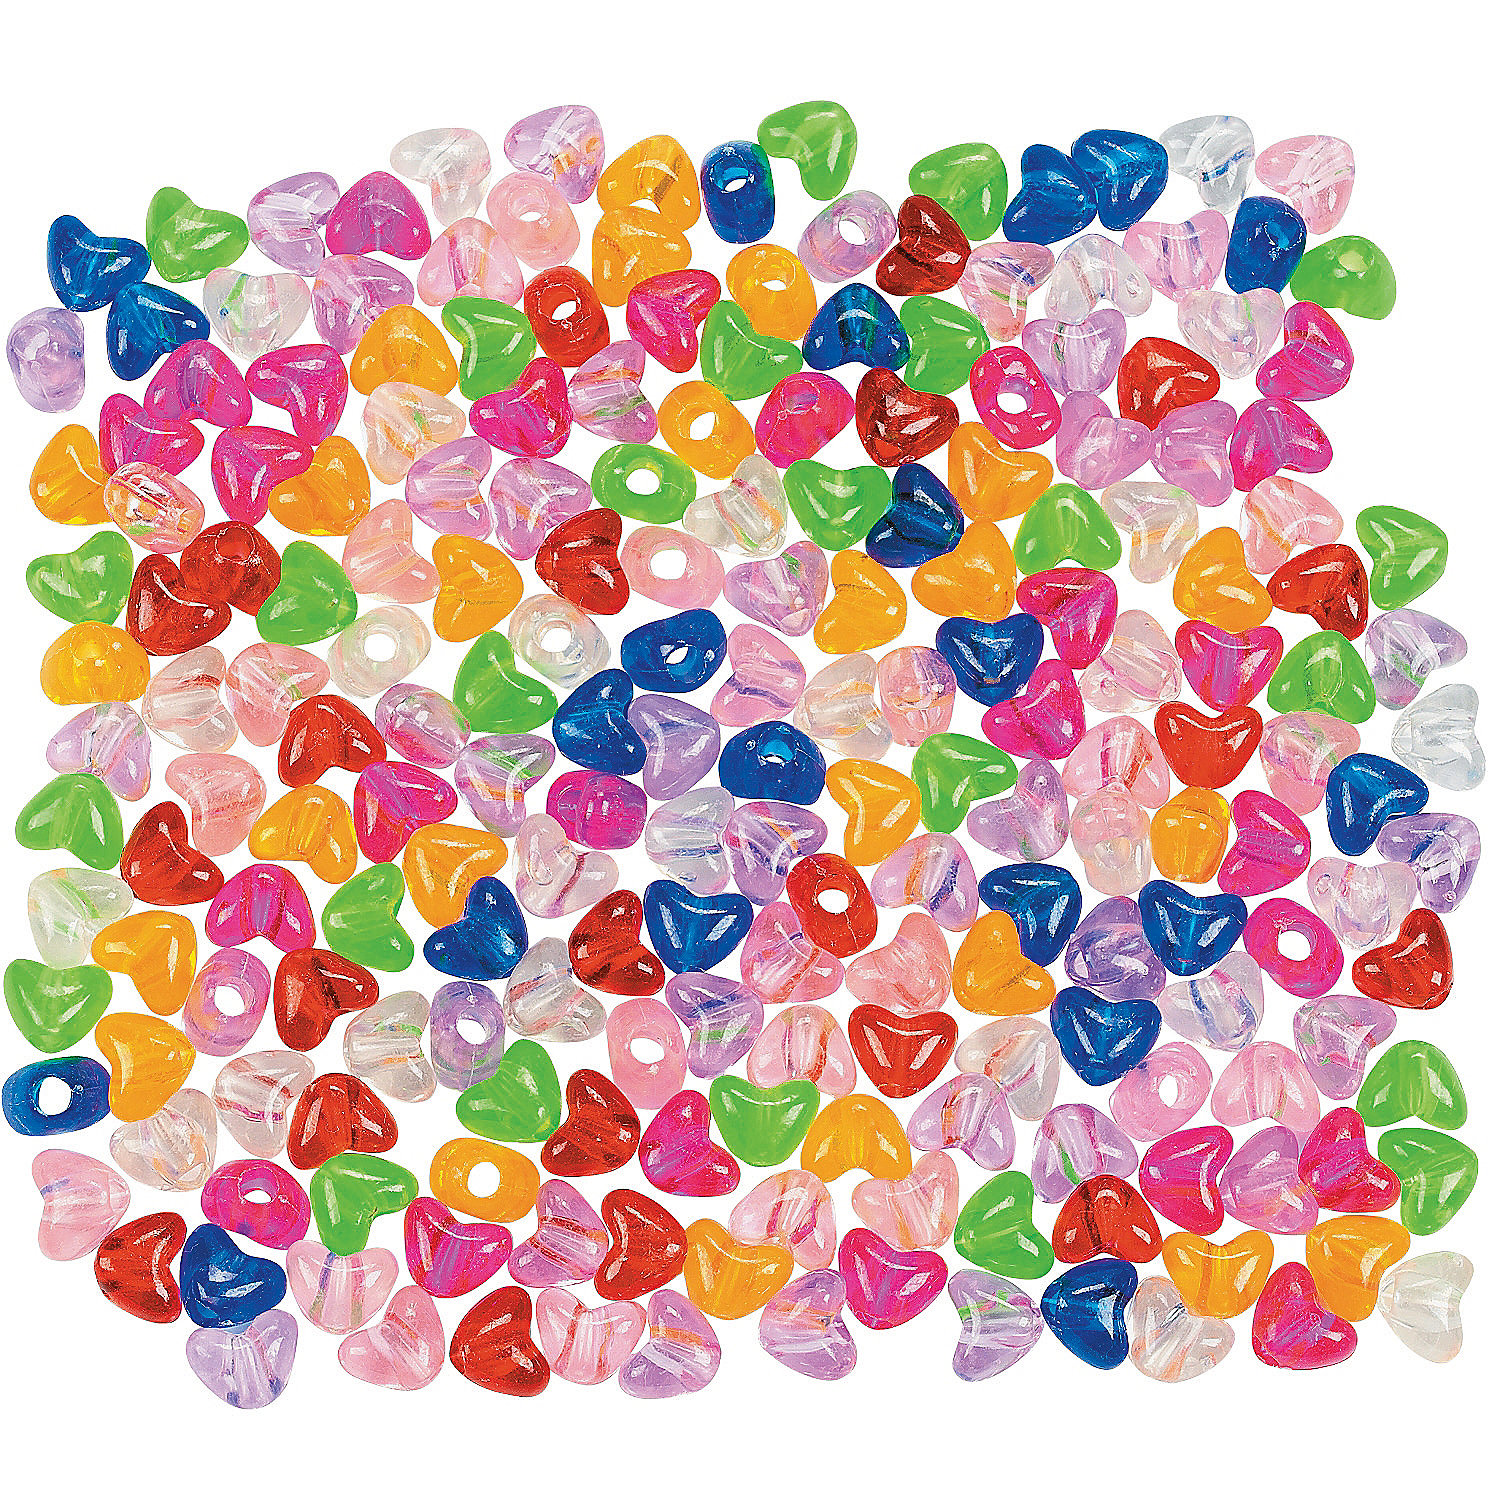 IN-57/71 Heart Shaped Pony Beads 600 Piece(s)